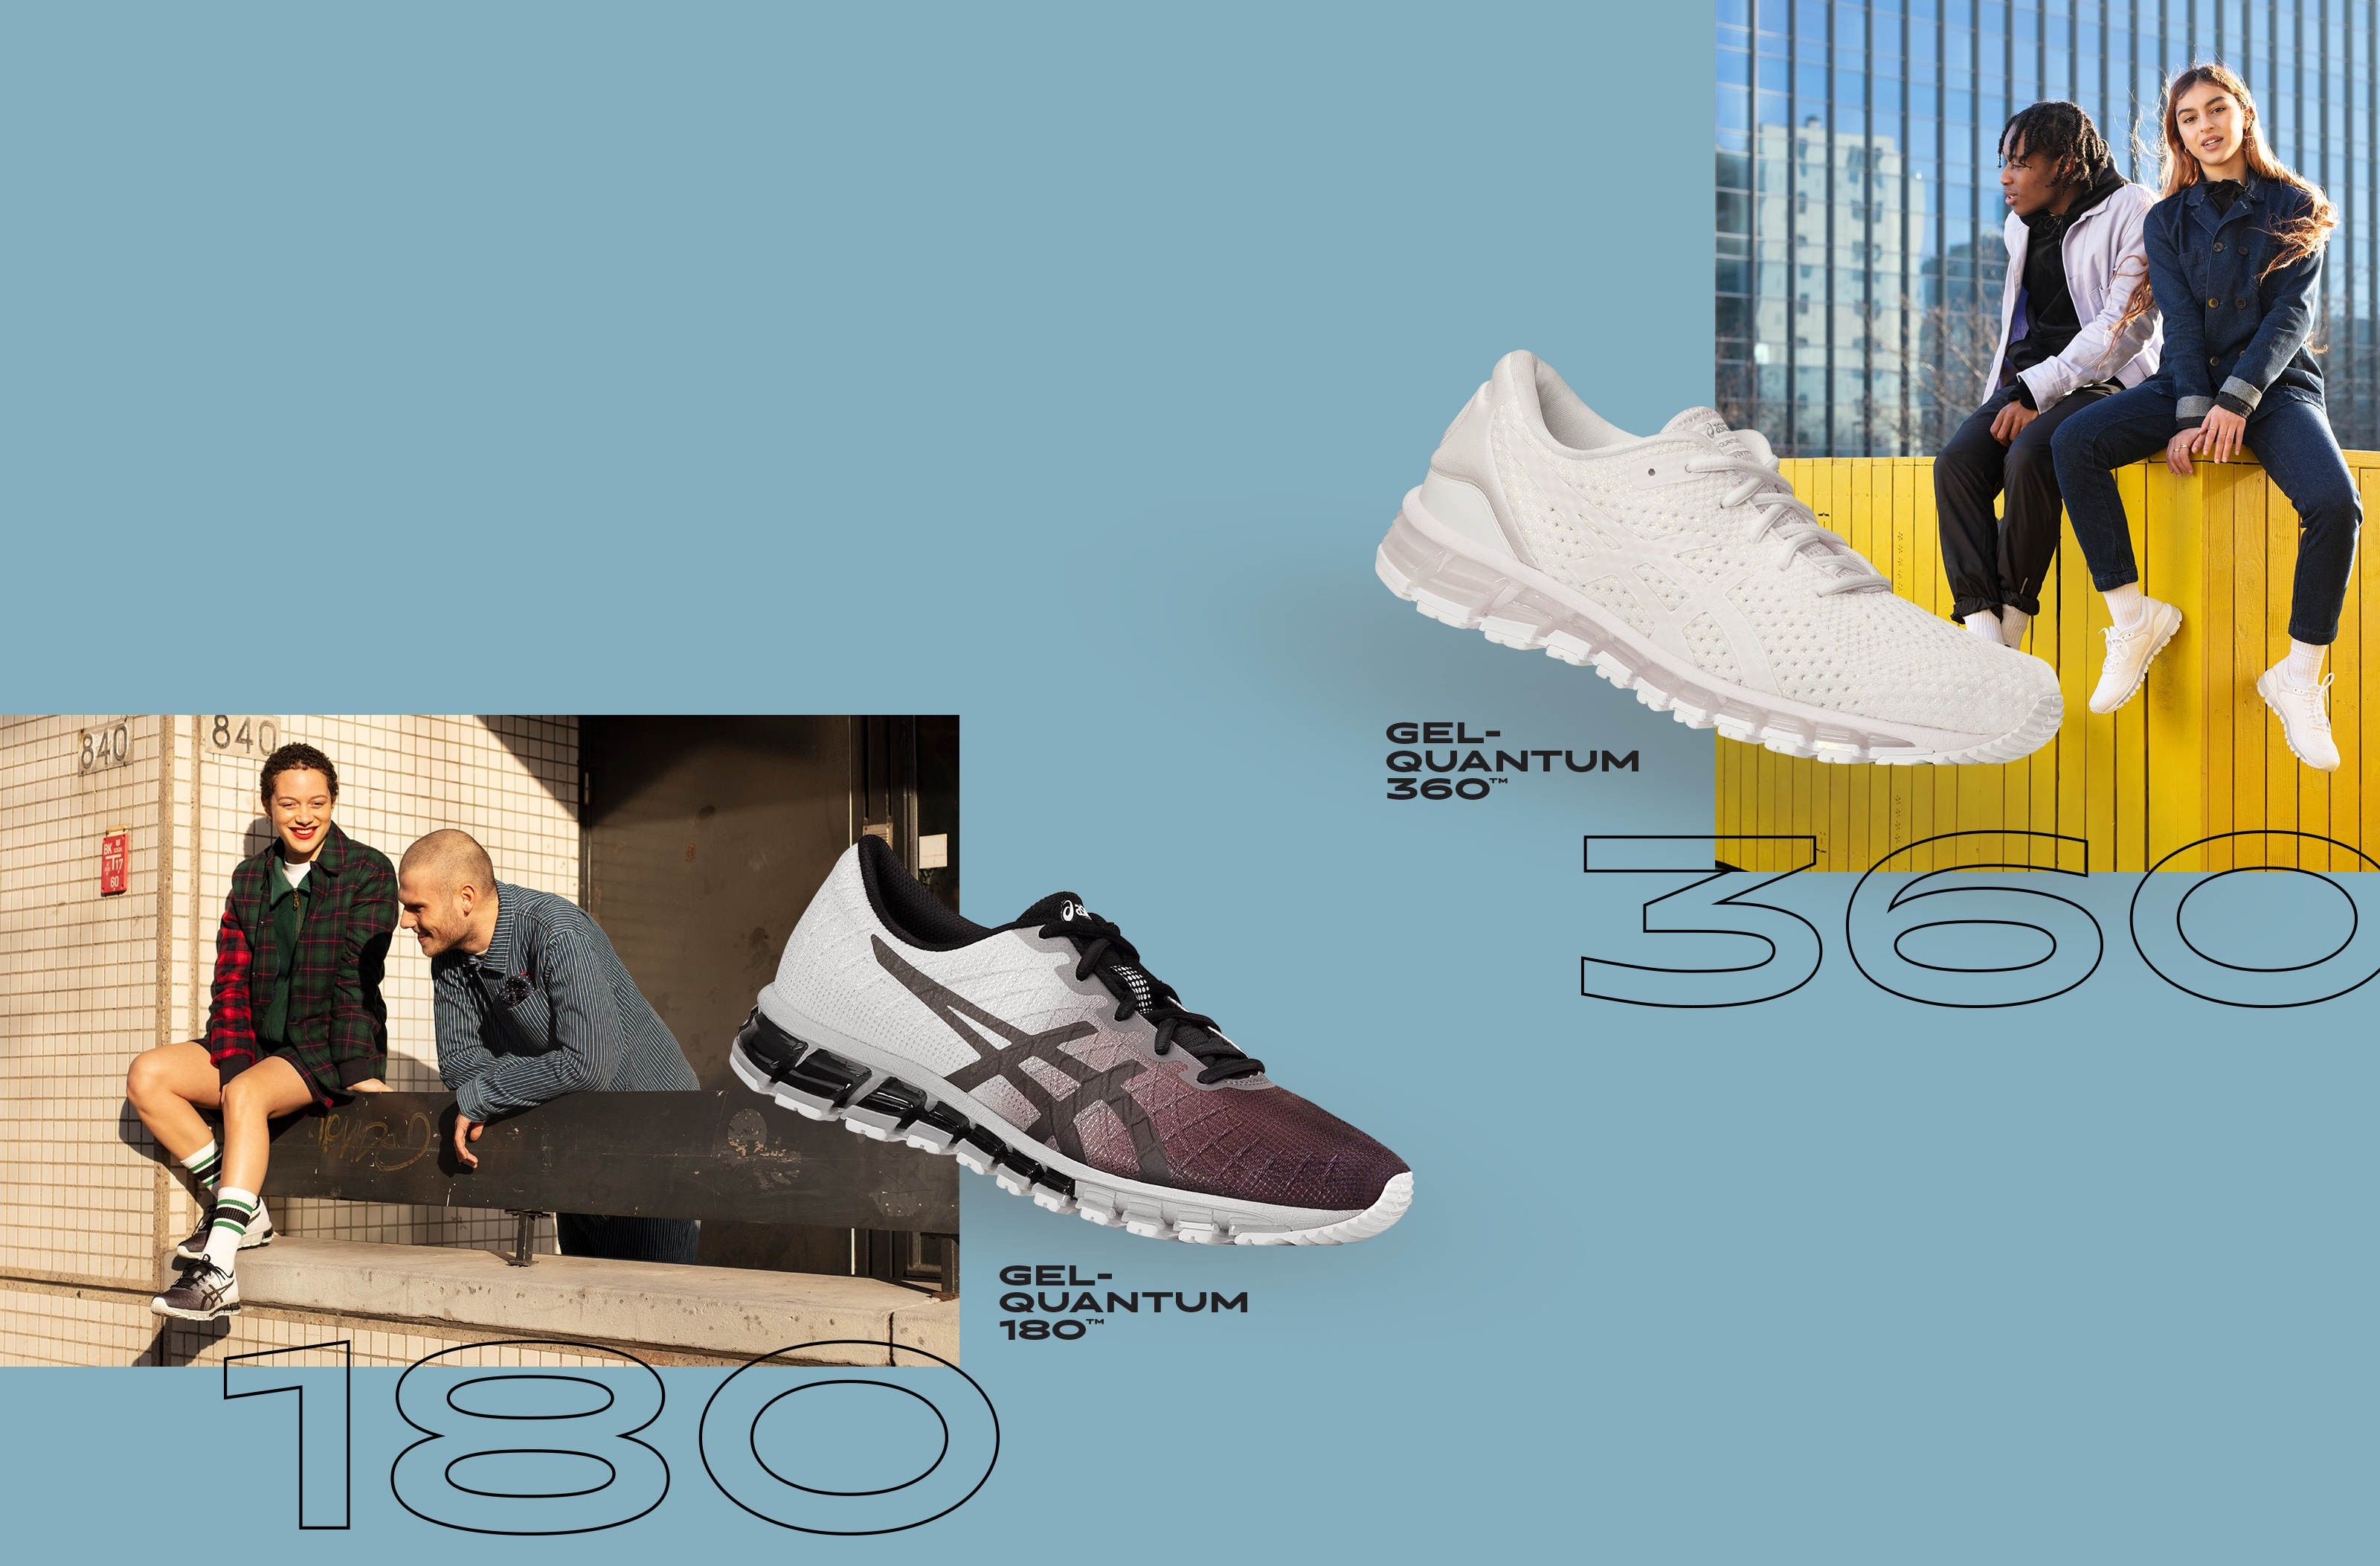 White and black running shoes over laid on image of men and women wearing the Gel-Quantum 360? and Gel- Quantum 180?